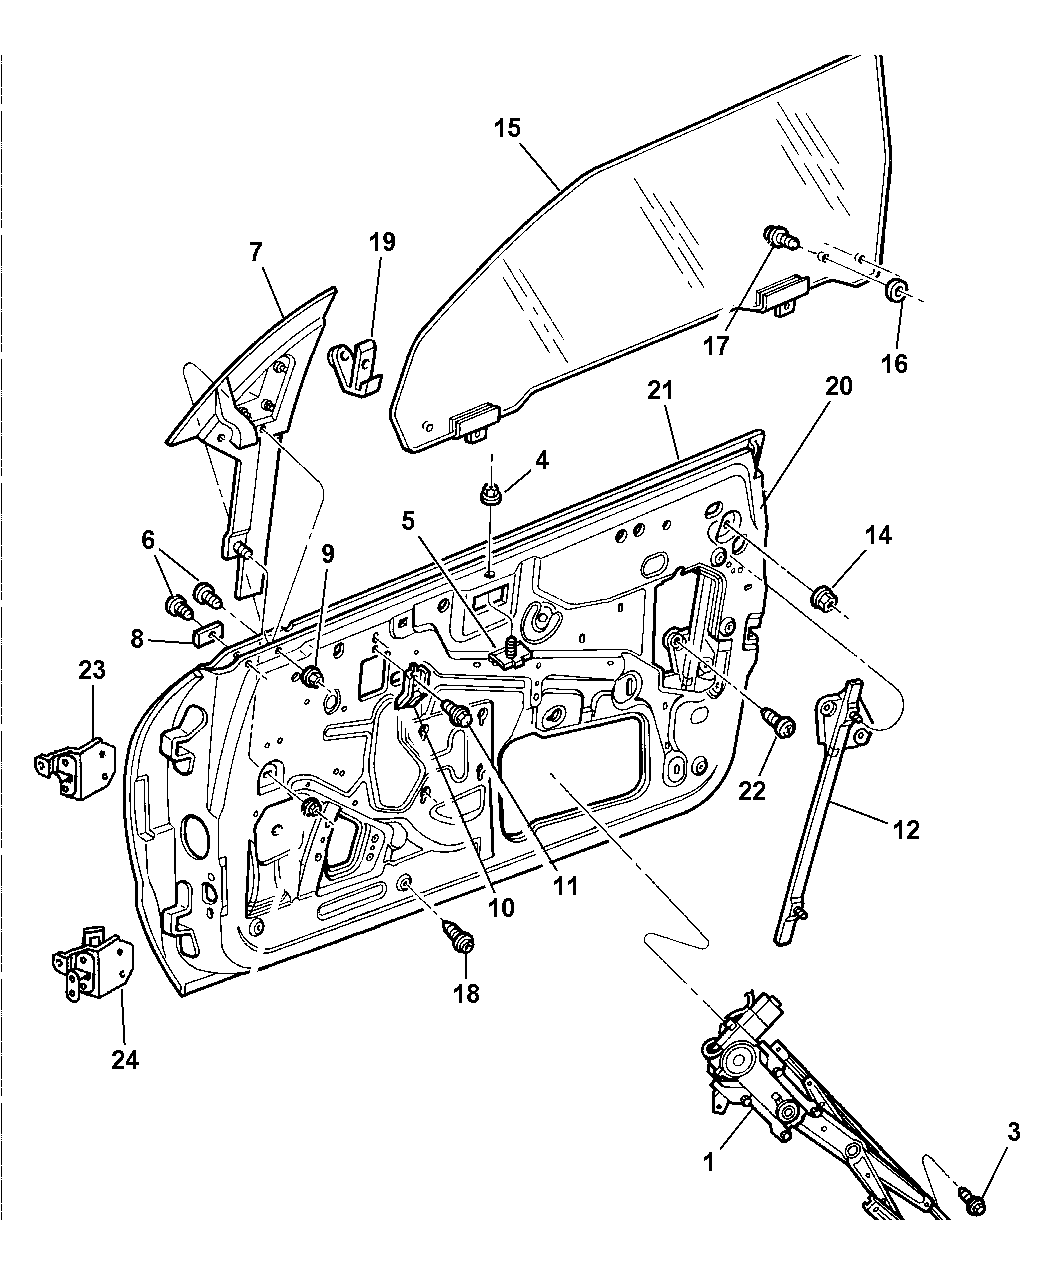 1999 chrysler sebring window guide diagrams